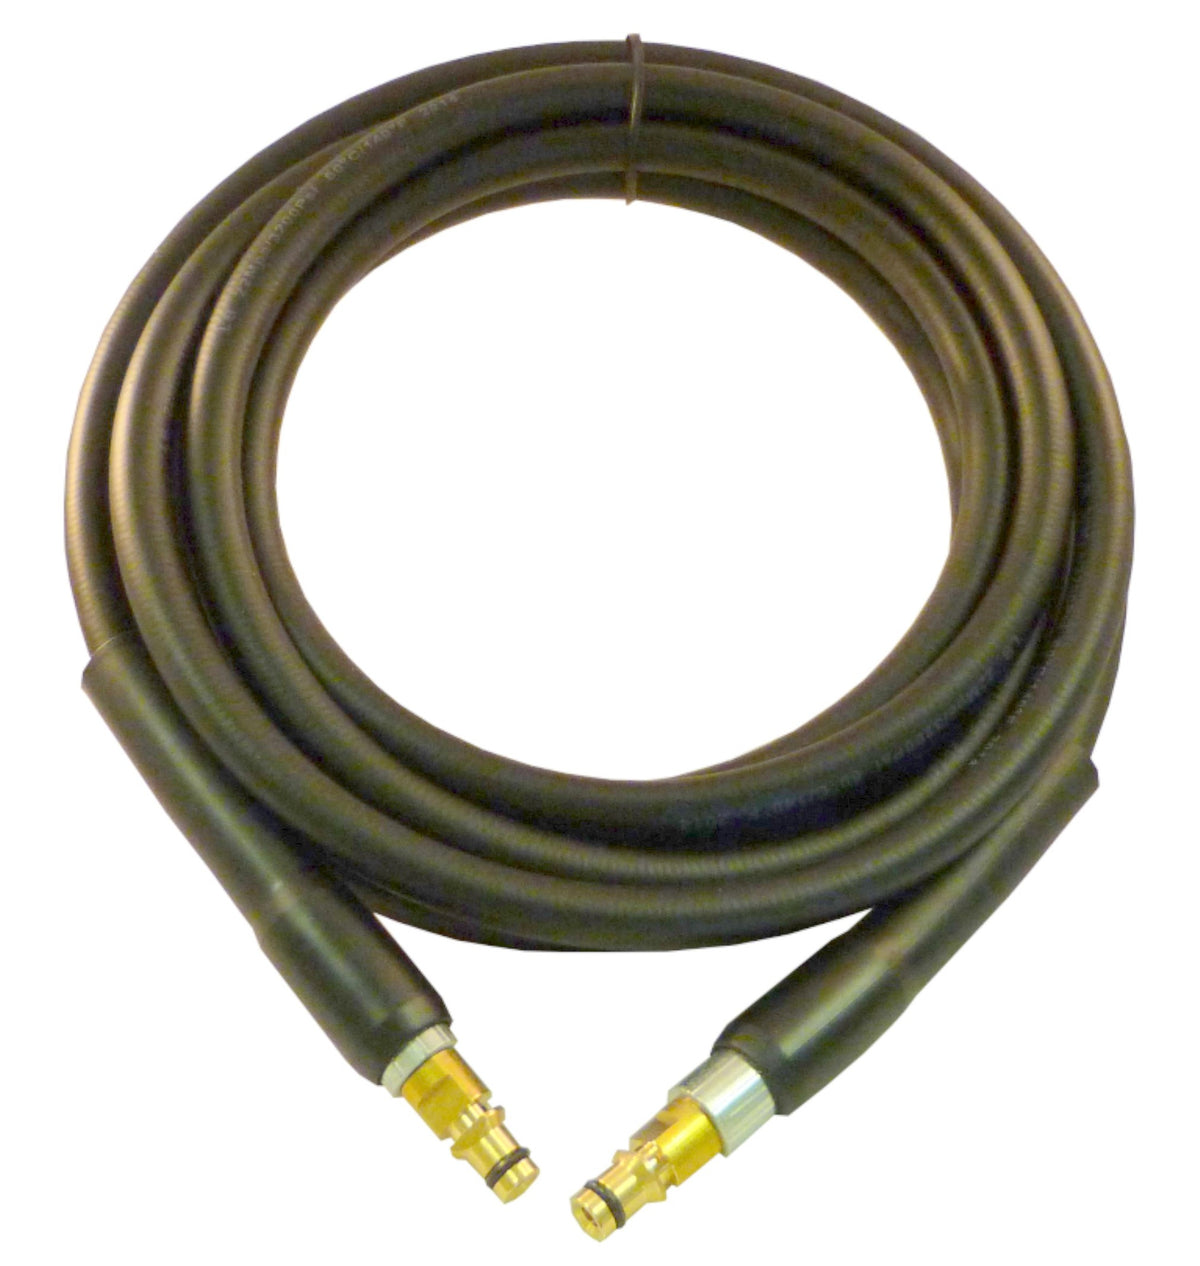 Hoses for Karcher Pressure Washers